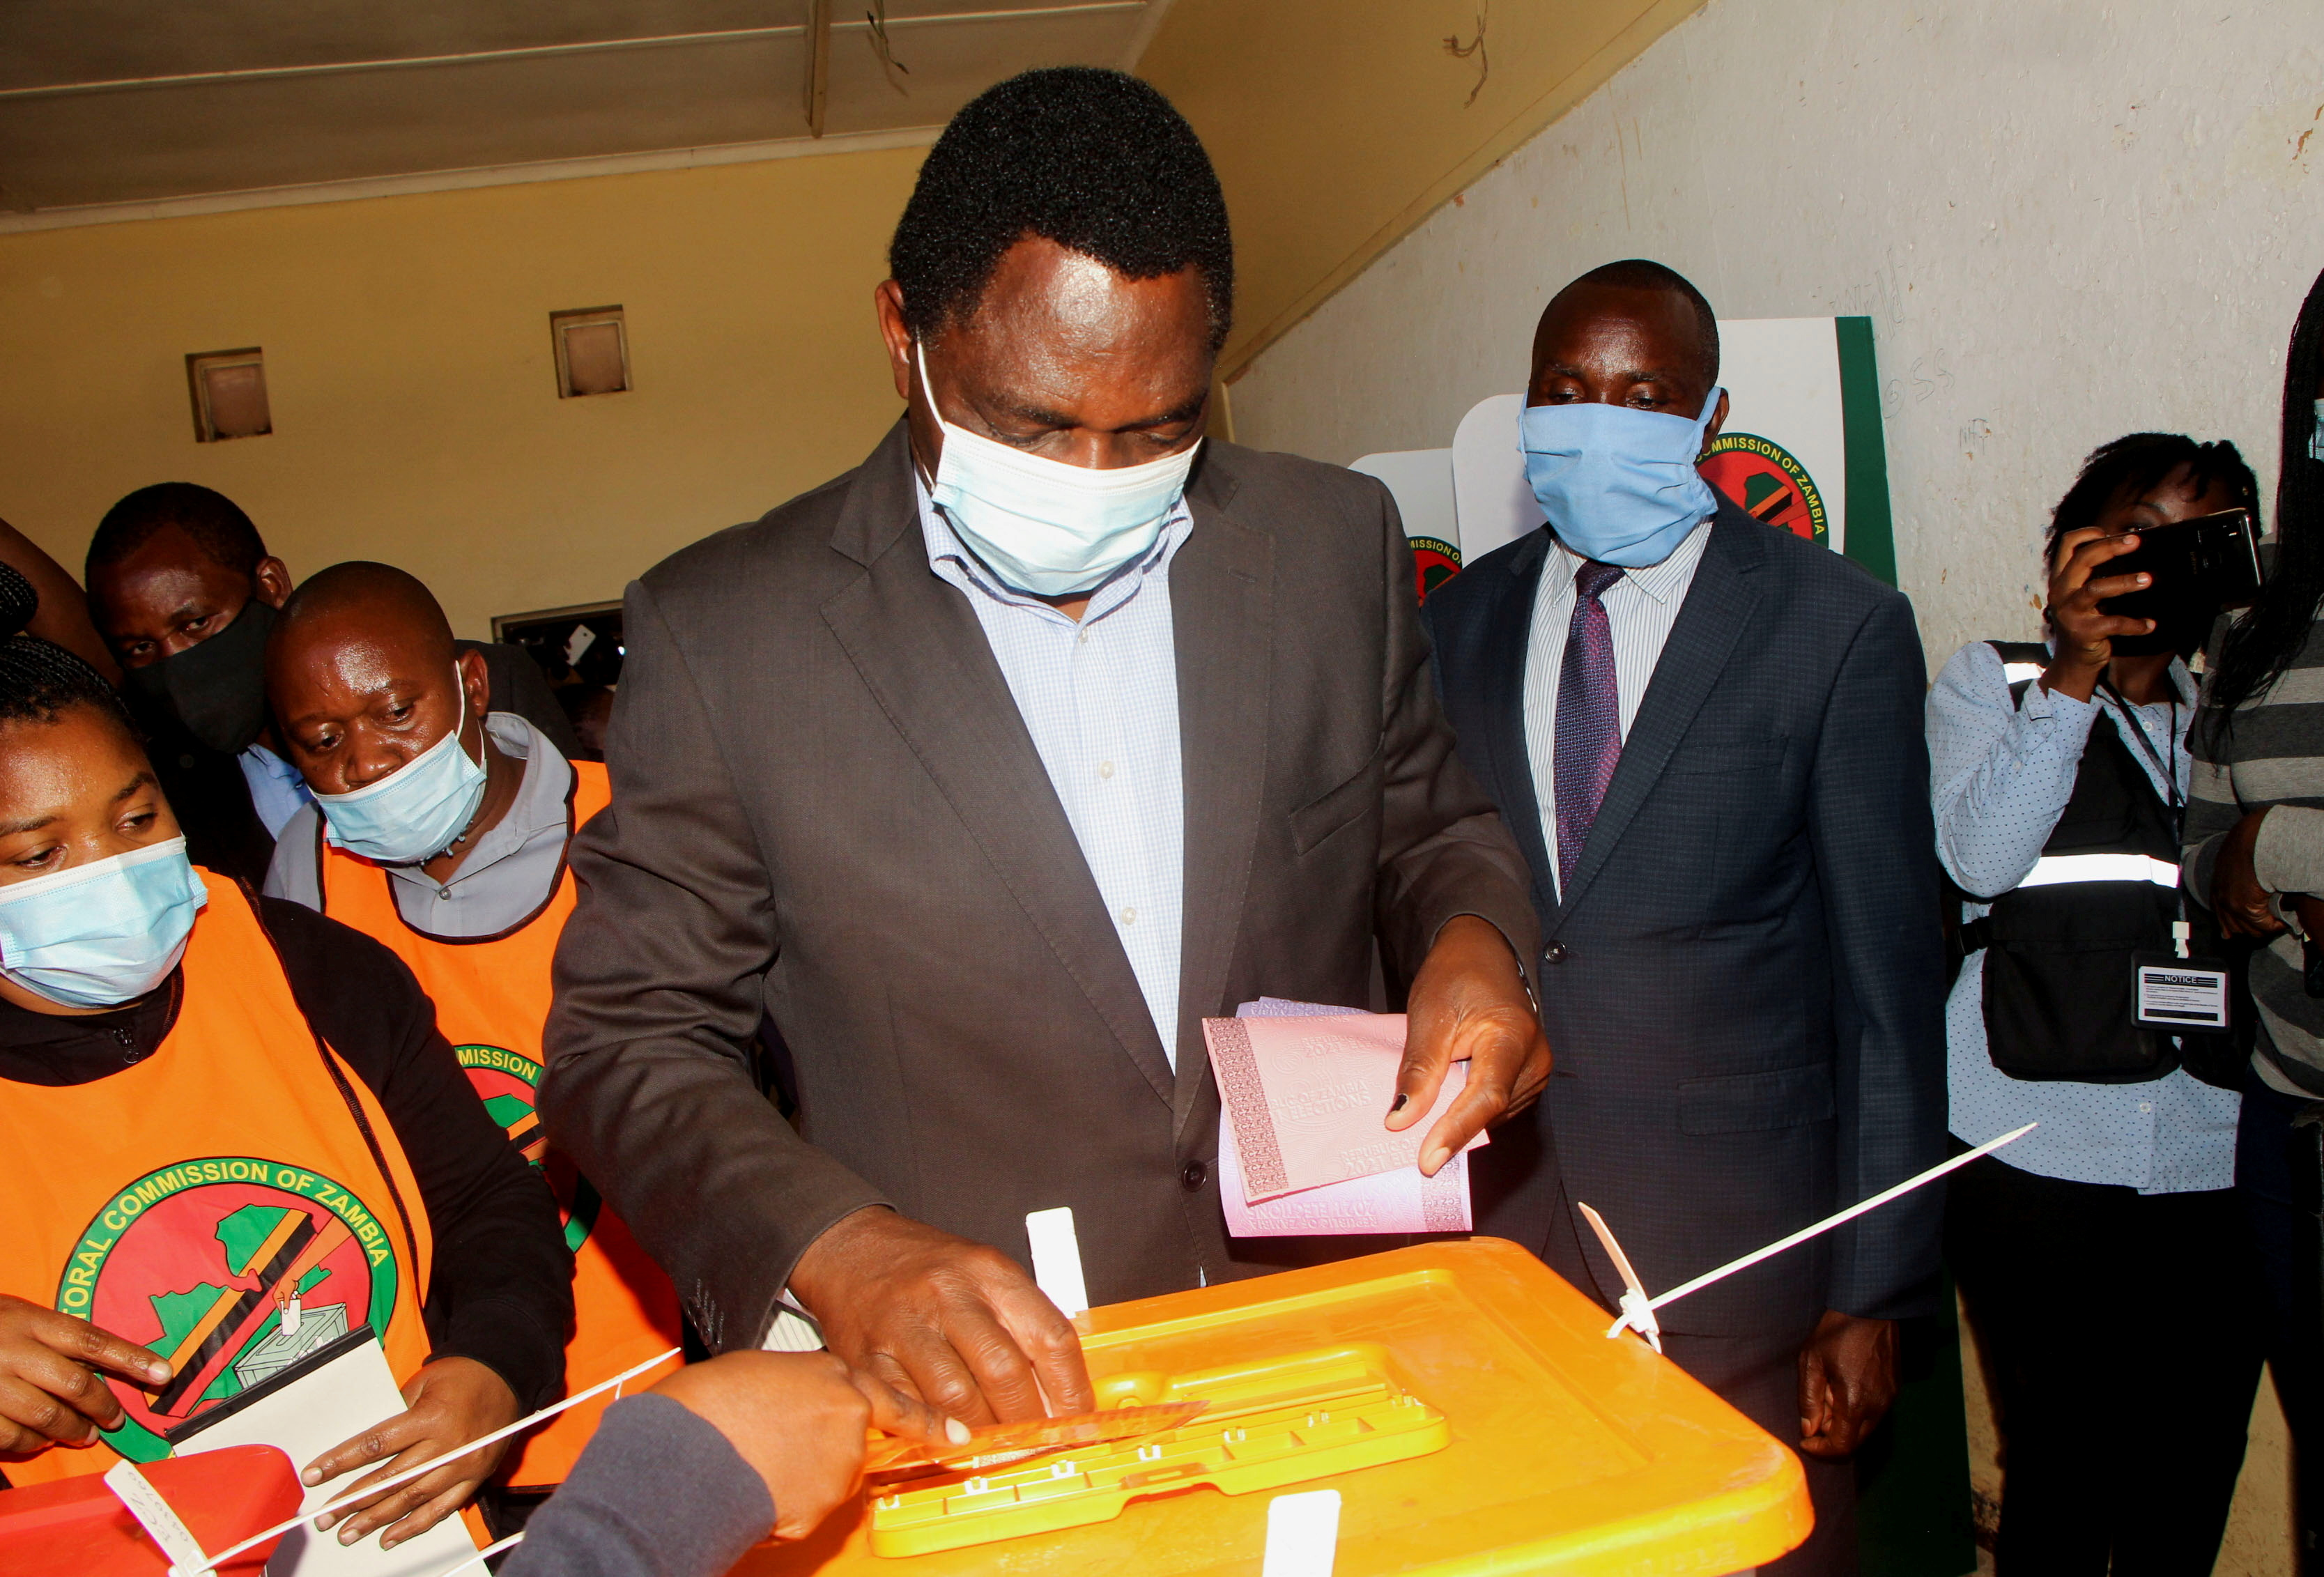 Opposition UPND party's presidential candidate Hakainde Hichilema casts his ballot in Lusaka, Zambia, August 12, 2021. REUTERS/Jean Ndaisenga/File Photo